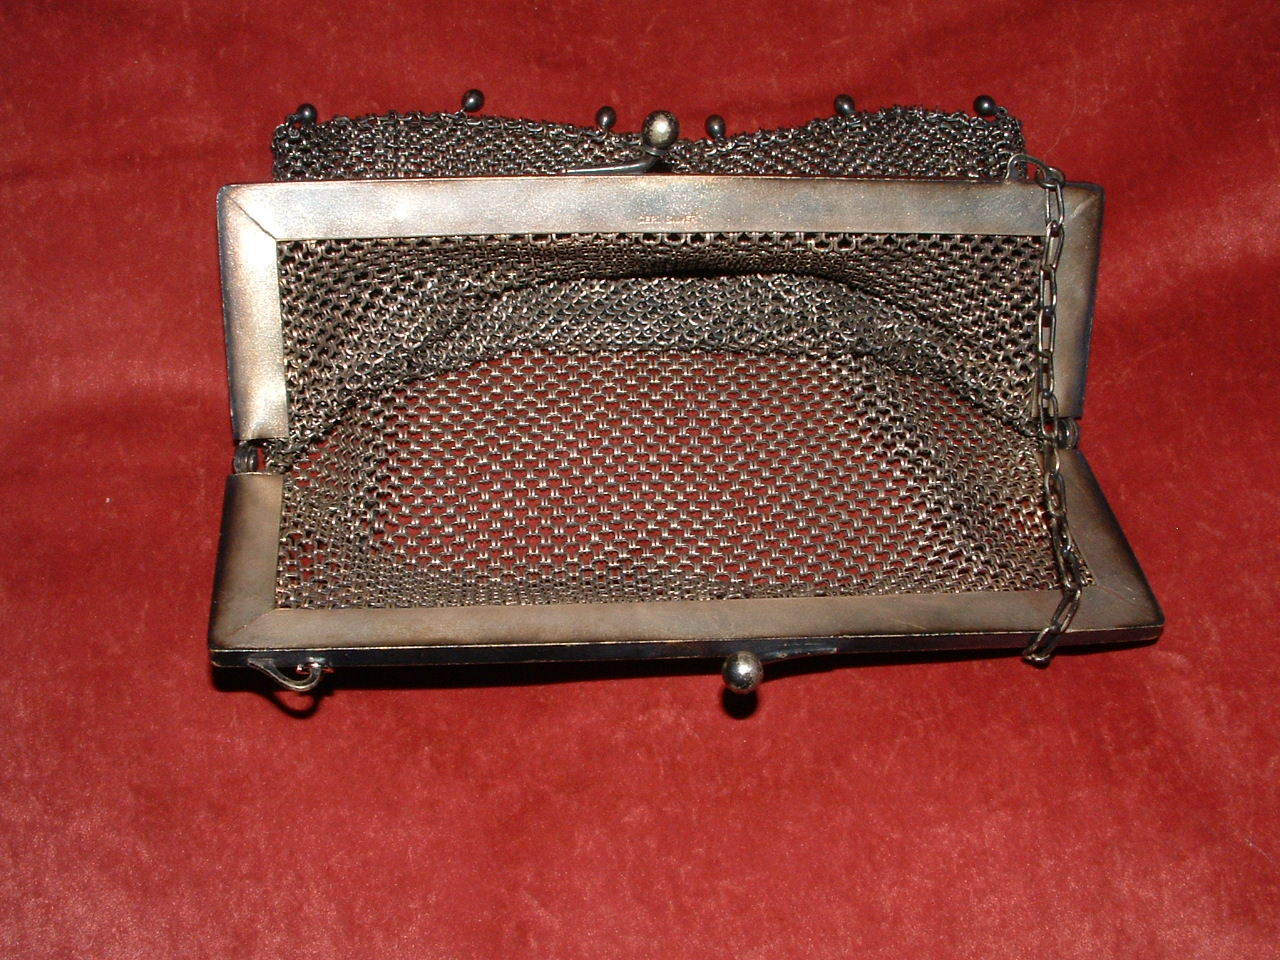 GERMAN SILVER LATE 1800'S SILVER MESH PURSE/ HANDBAG image 2